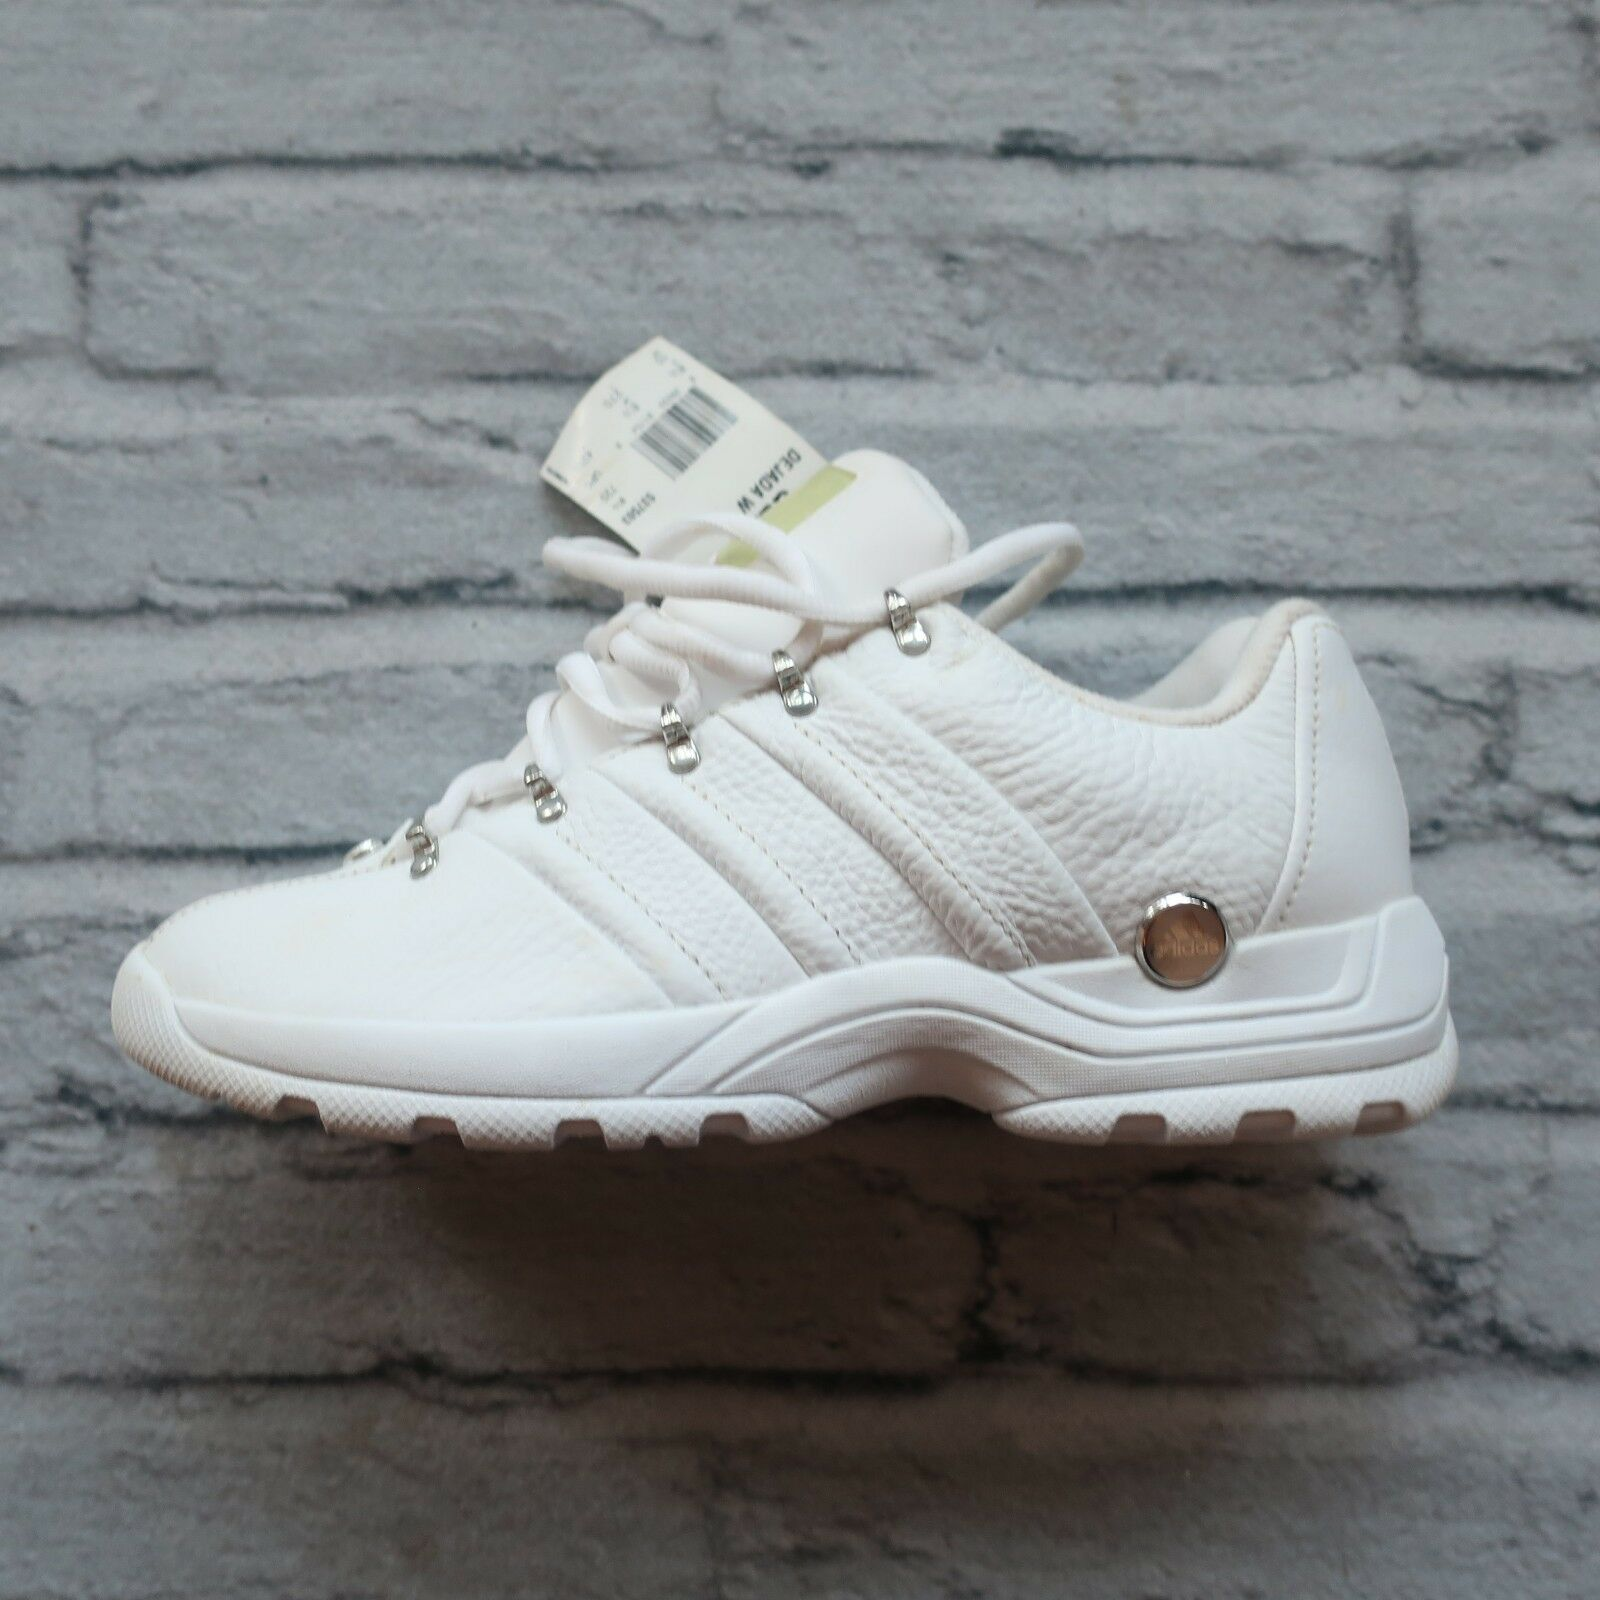 New 2004 Adidas Dejada shoes Size 10 White Vtg Trainers